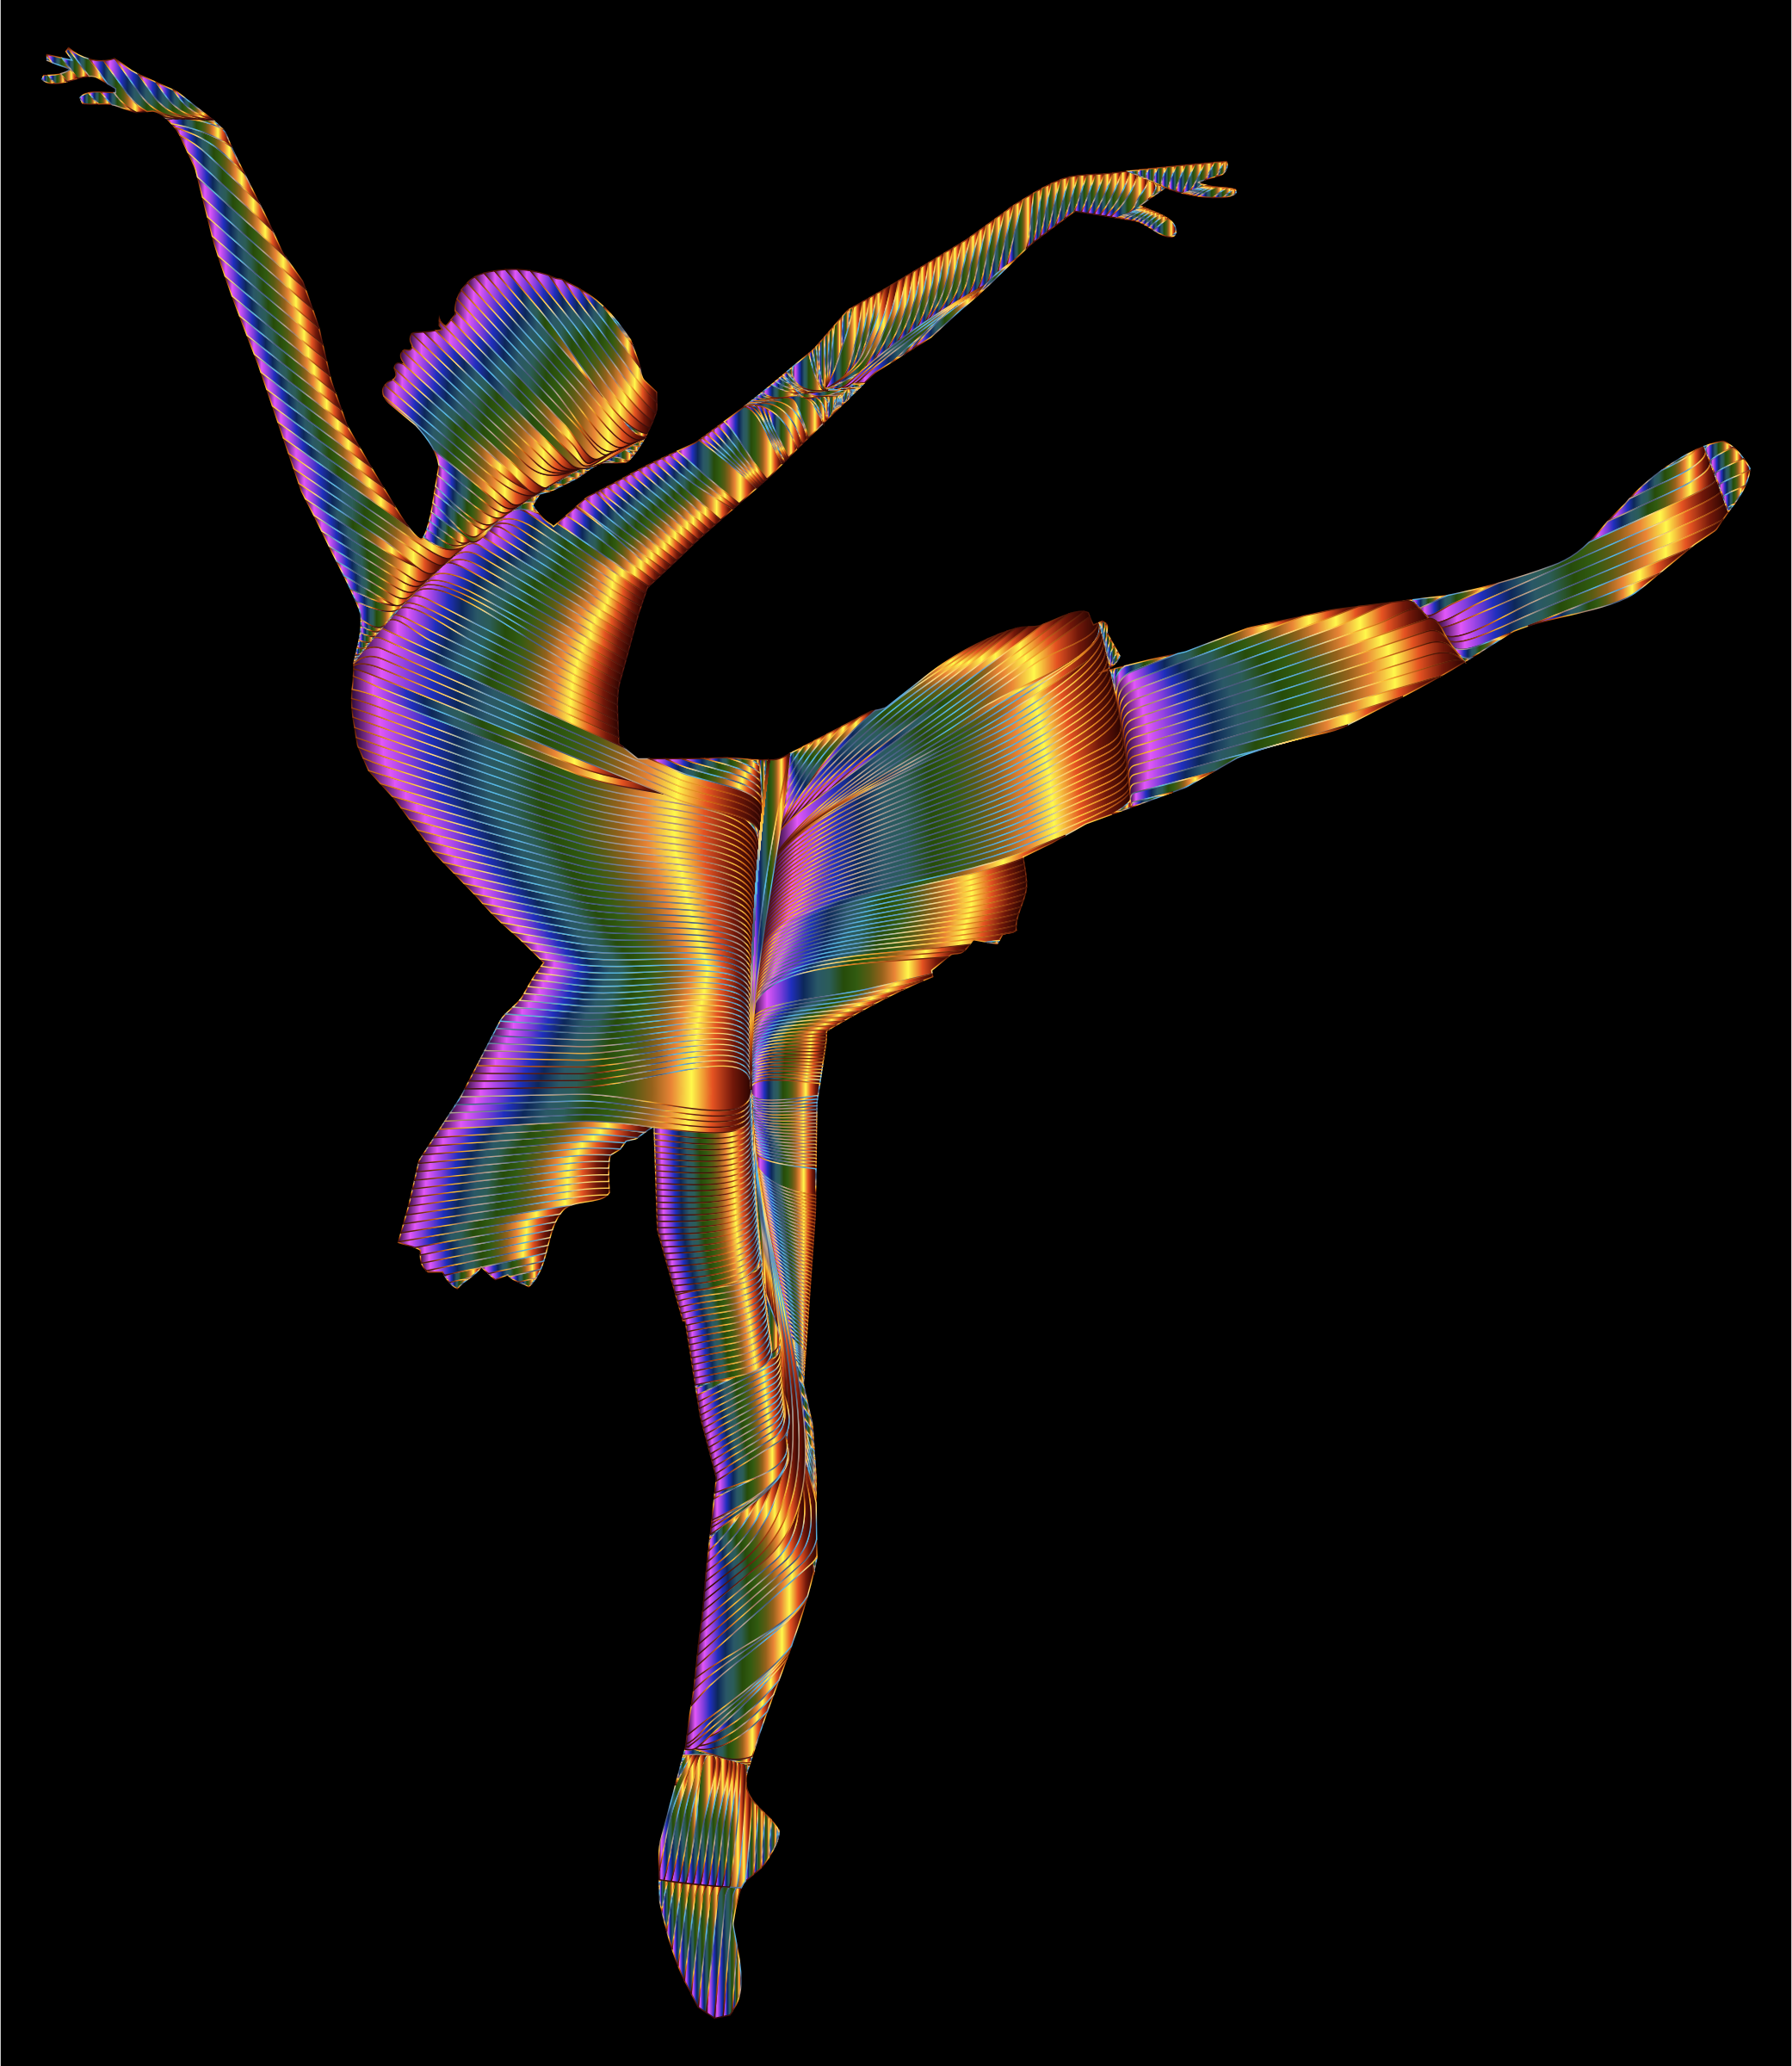 Chromatic Graceful Ballerina Silhouette by GDJ